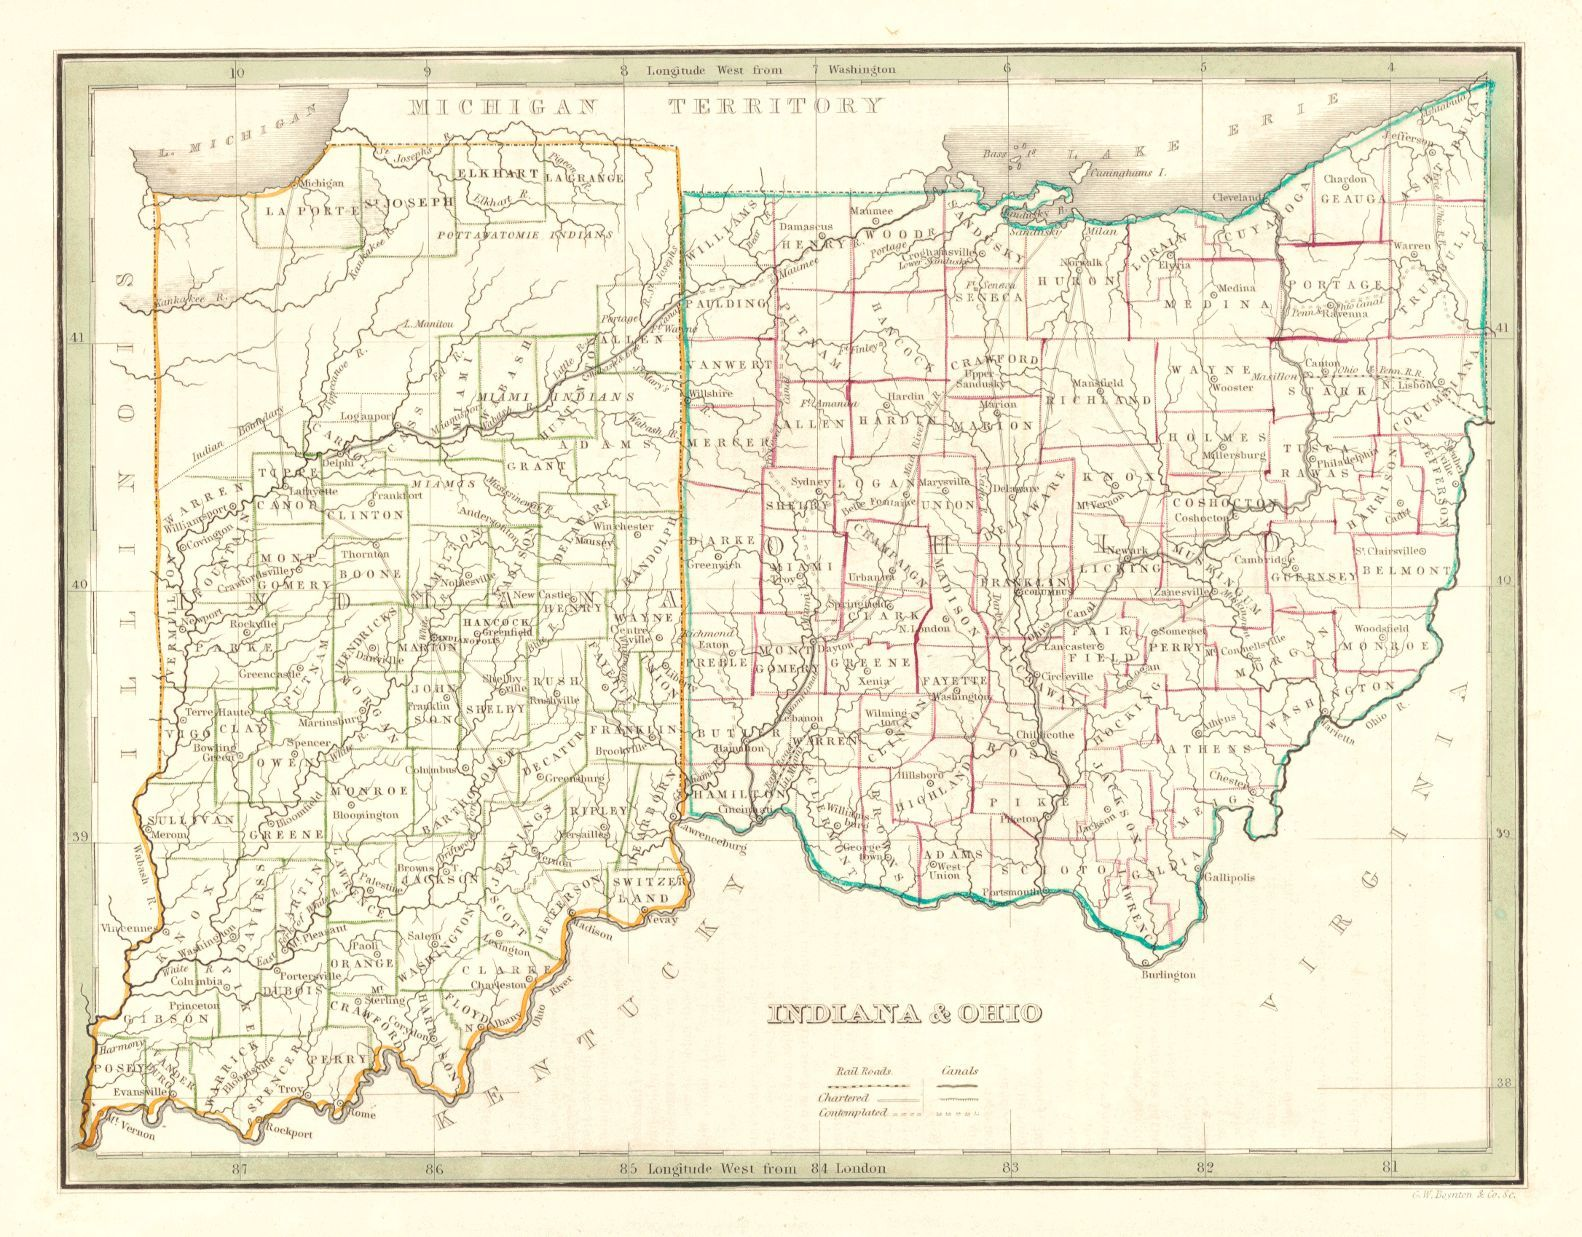 Rivers In Ohio Map.Indiana Ohio 1835 Bradford T G Map Detailing Counties County